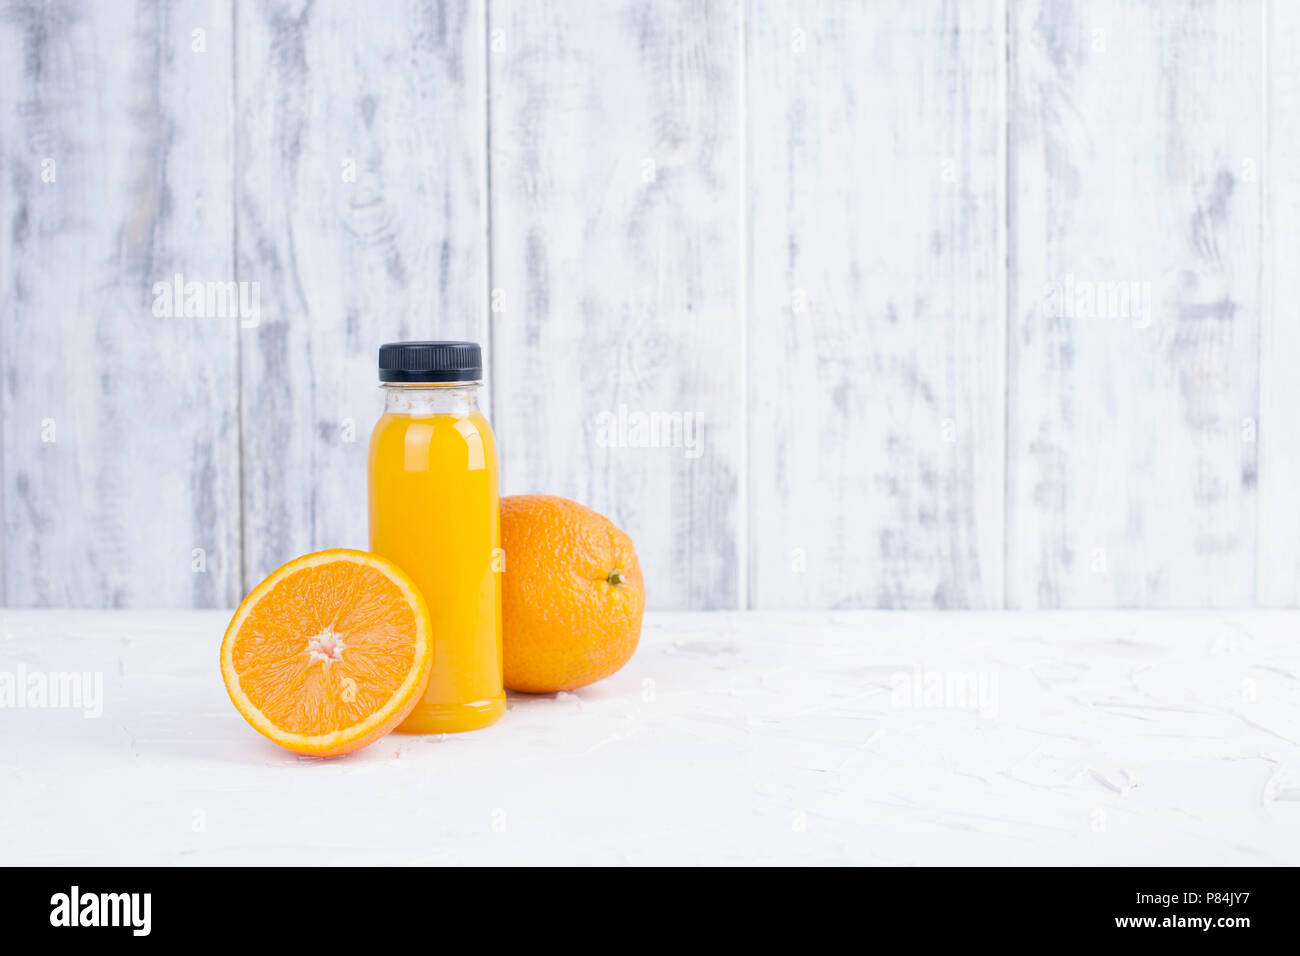 Bright oranges and orange juice in a plastic bottle. White wooden background. Copy space - Stock Image